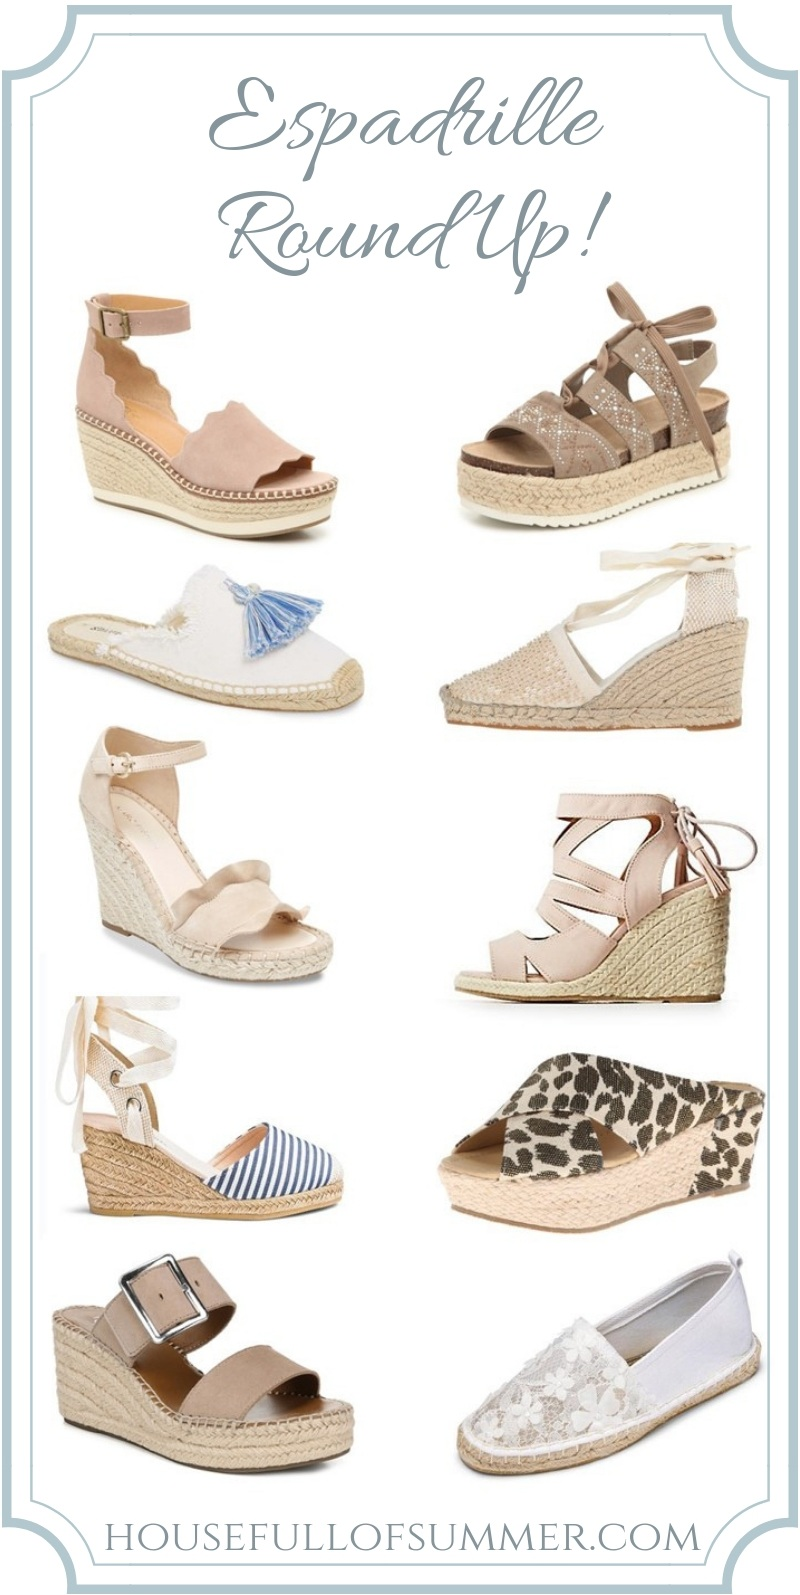 Espadrille Round Up | Versatile, Comfortable, Stylish #housefullofsummer #springstyle #espadrilles #sandals #wedges #fashion